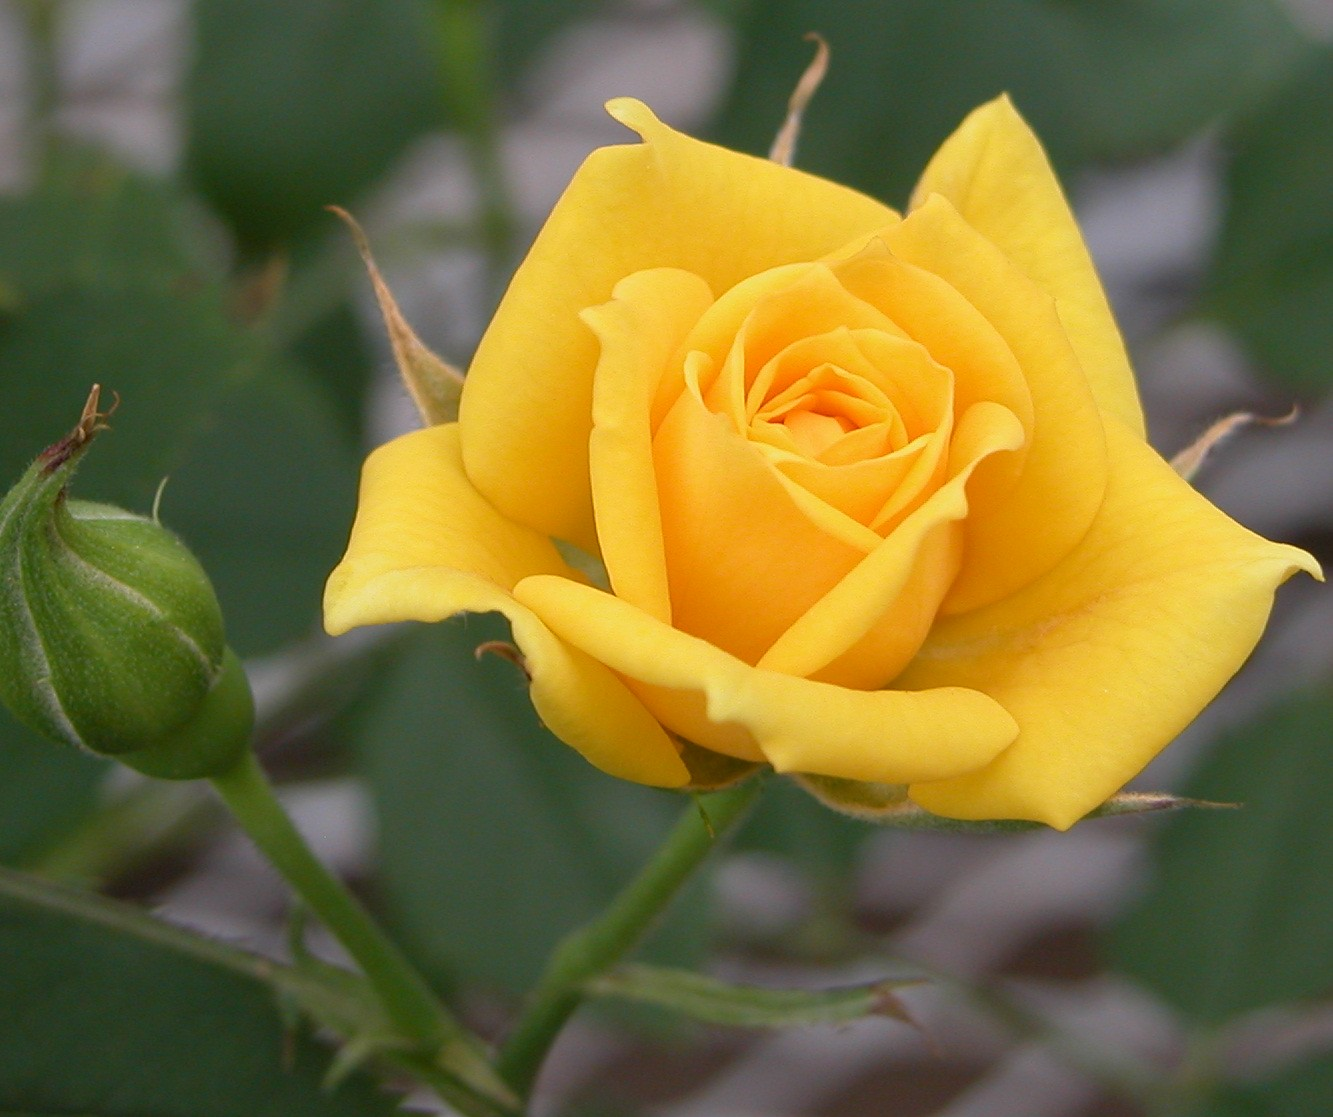 Best yellow flowers rose flower images - Rose flower images full size hd ...